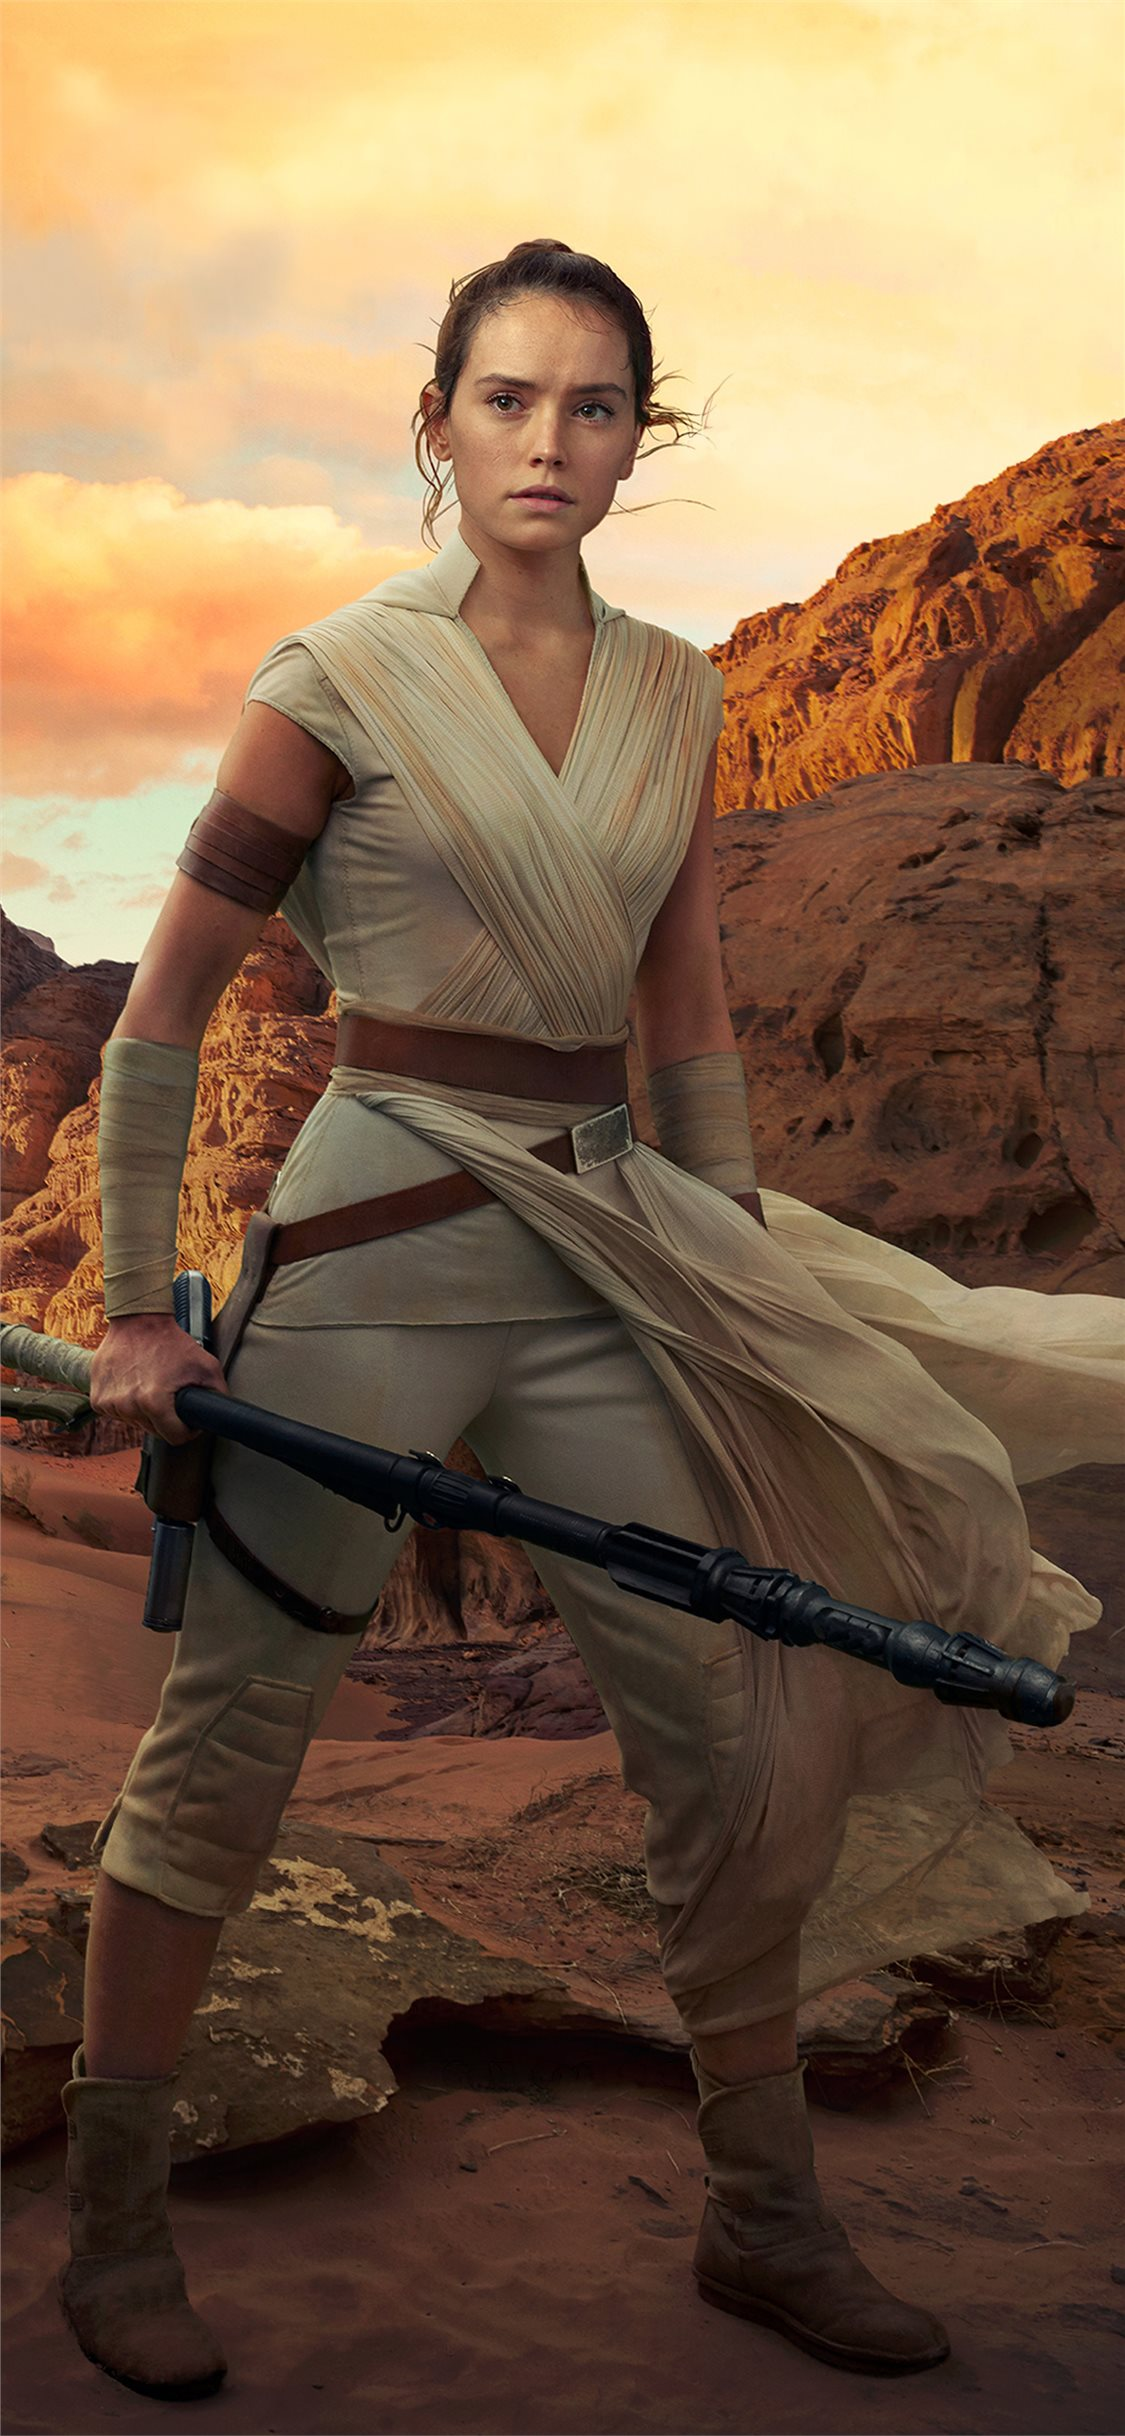 Rey Star Wars The Rise Of Skywalker 2019 4k Iphone X Wallpapers Free Download